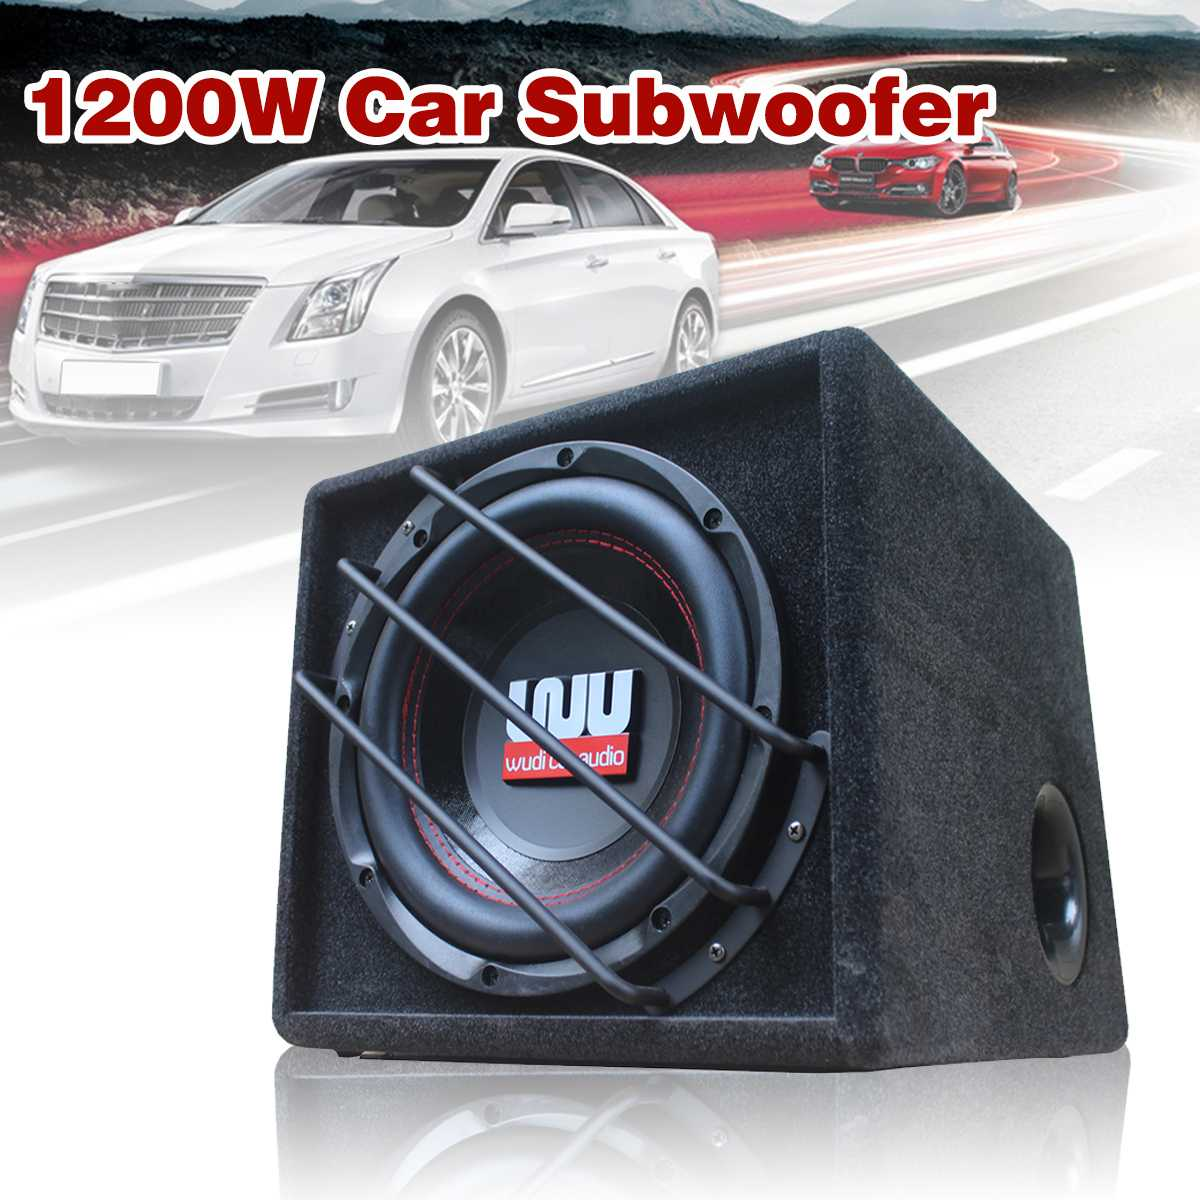 10 inch 1200w <font><b>car</b></font> subwoofer Strong Subwoofer <font><b>Car</b></font> <font><b>Speaker</b></font> Auto Super Bass <font><b>Car</b></font> <font><b>Audio</b></font> <font><b>Speaker</b></font> active Woofer Built-in Amplifer image